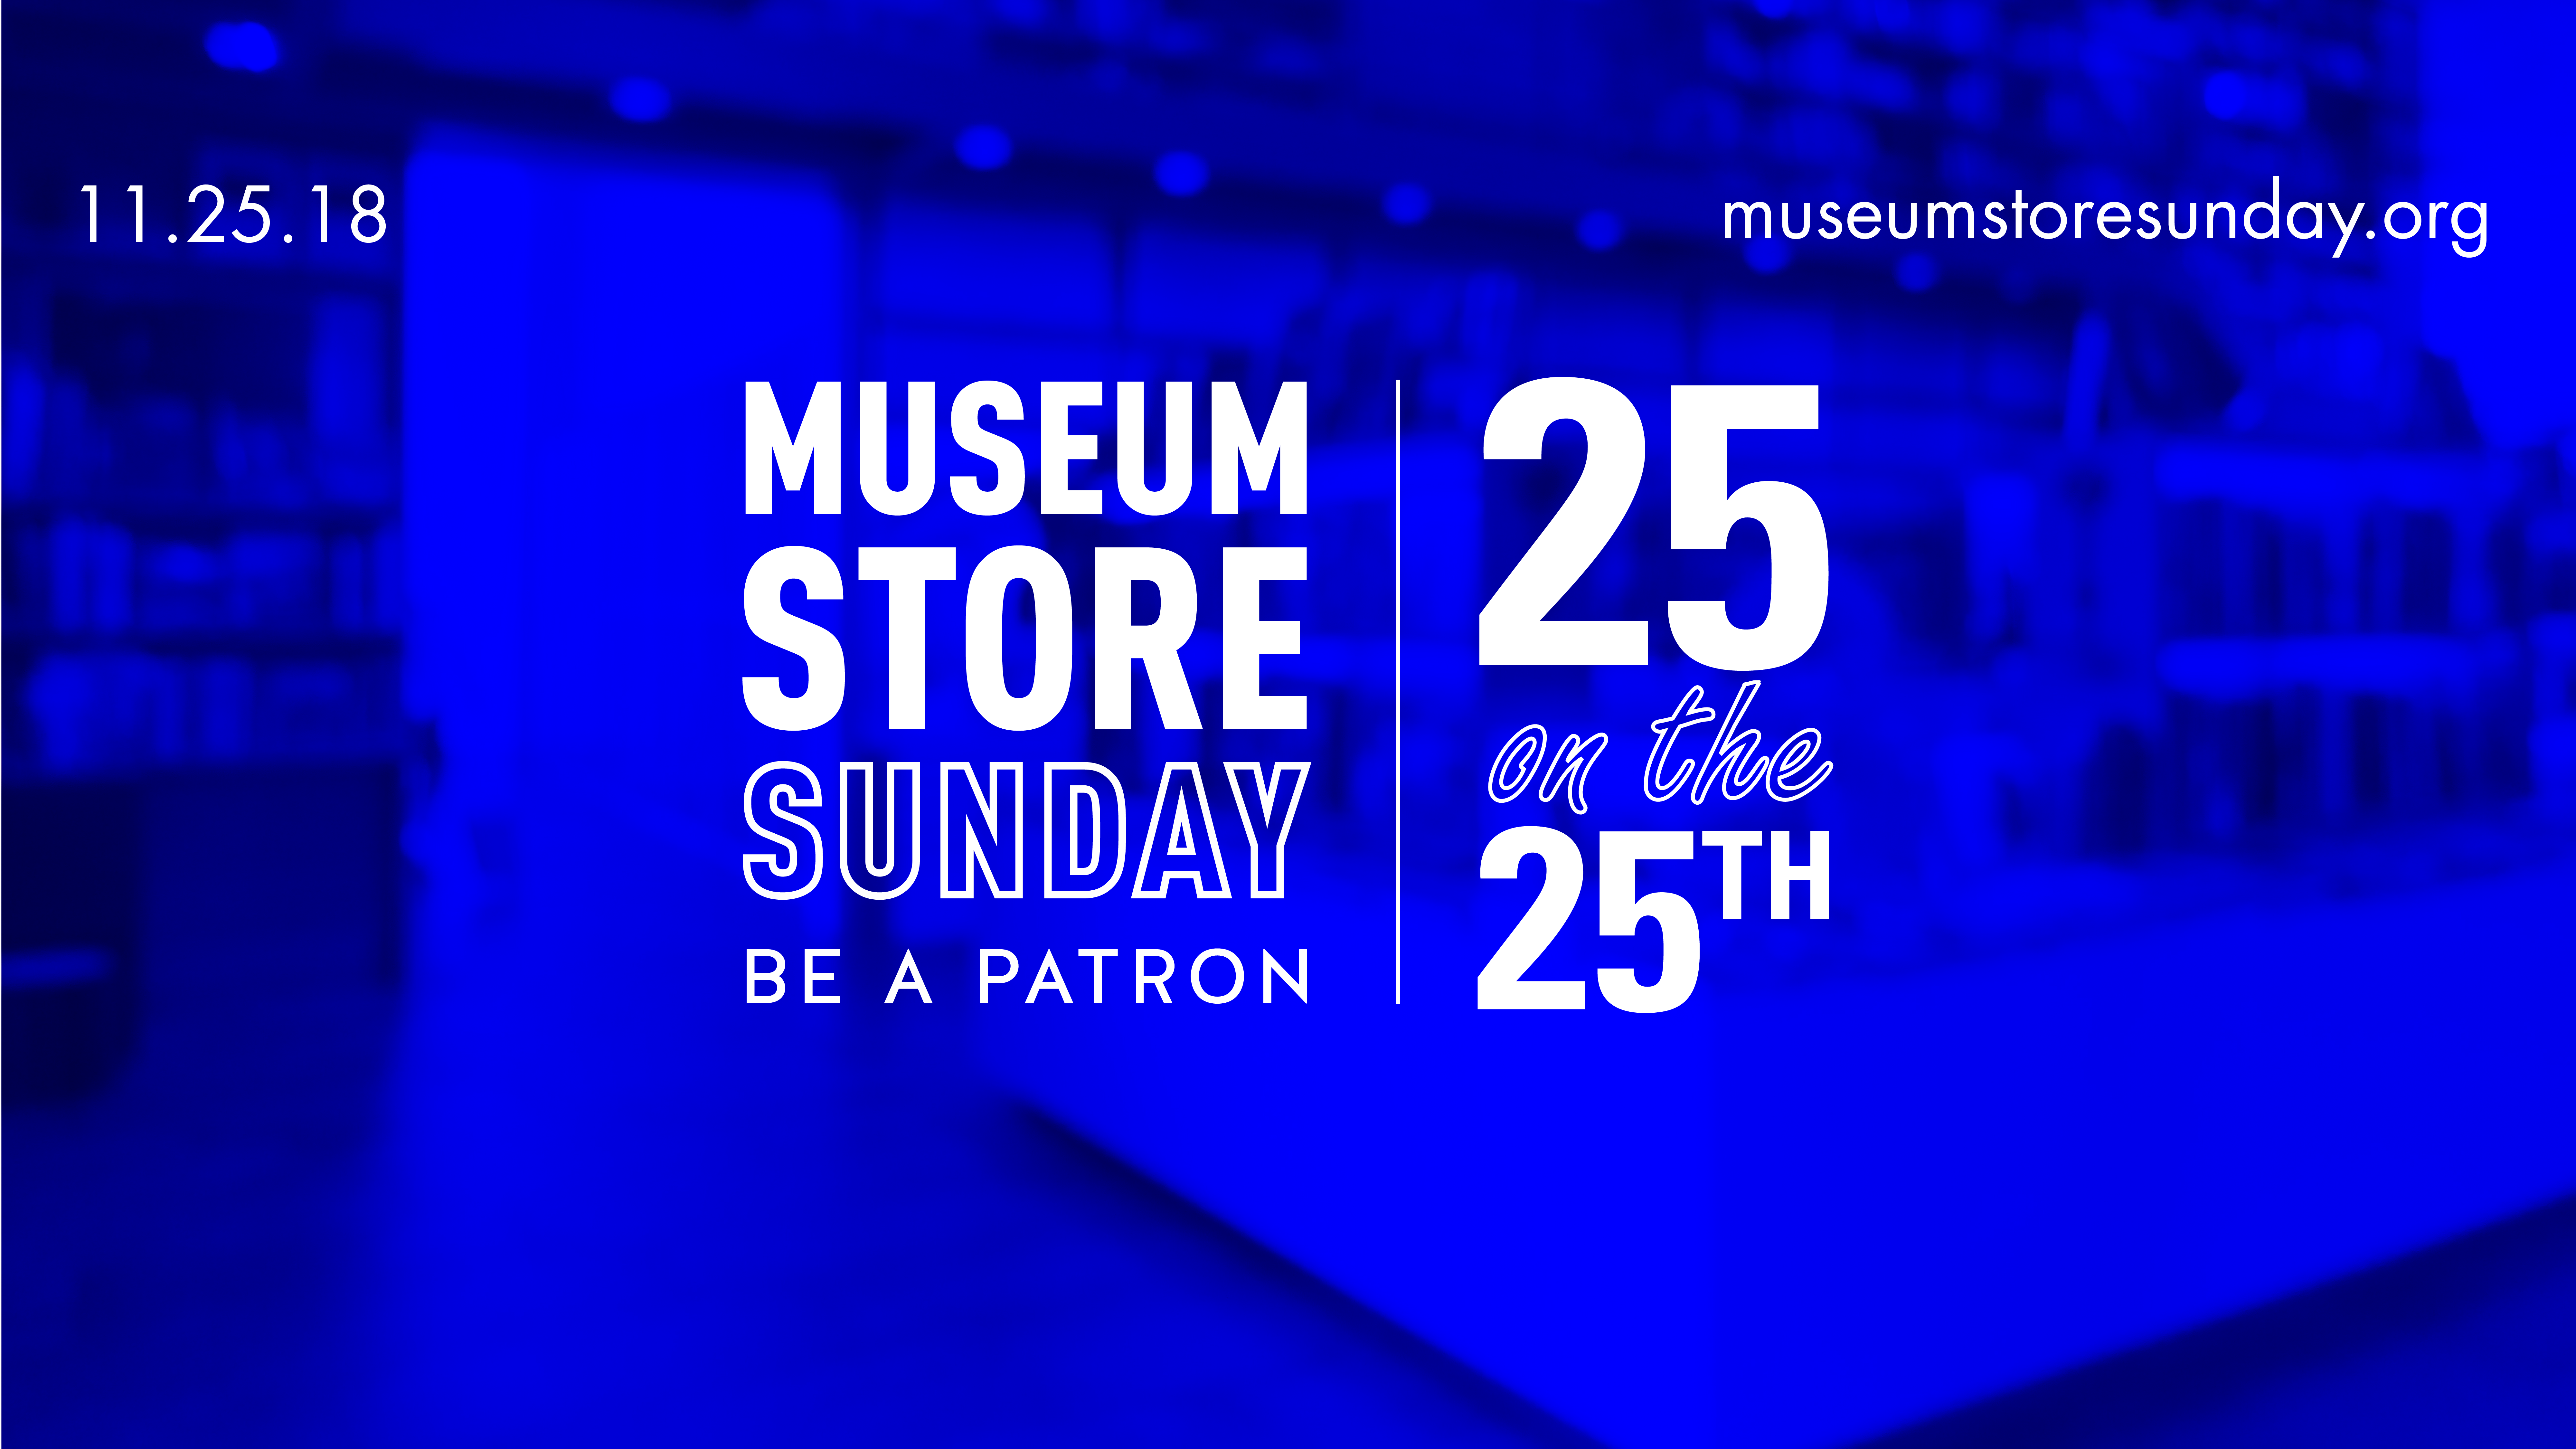 Museum Store Sunday 25 on the 25th graphic